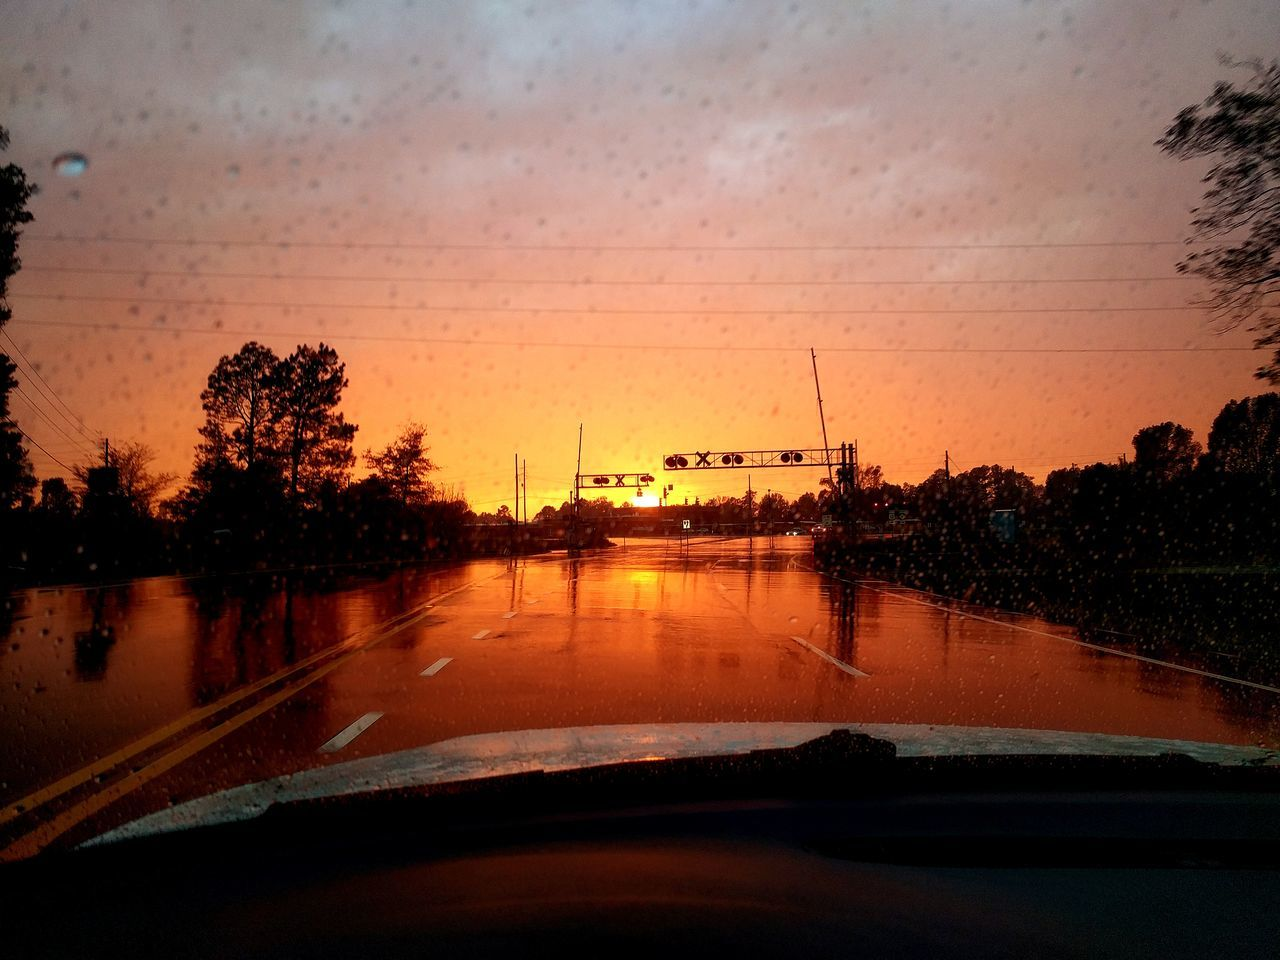 Reflections Roadway Rail Crossing Raindrops at Sunset Intersection Views Drivebyphotography